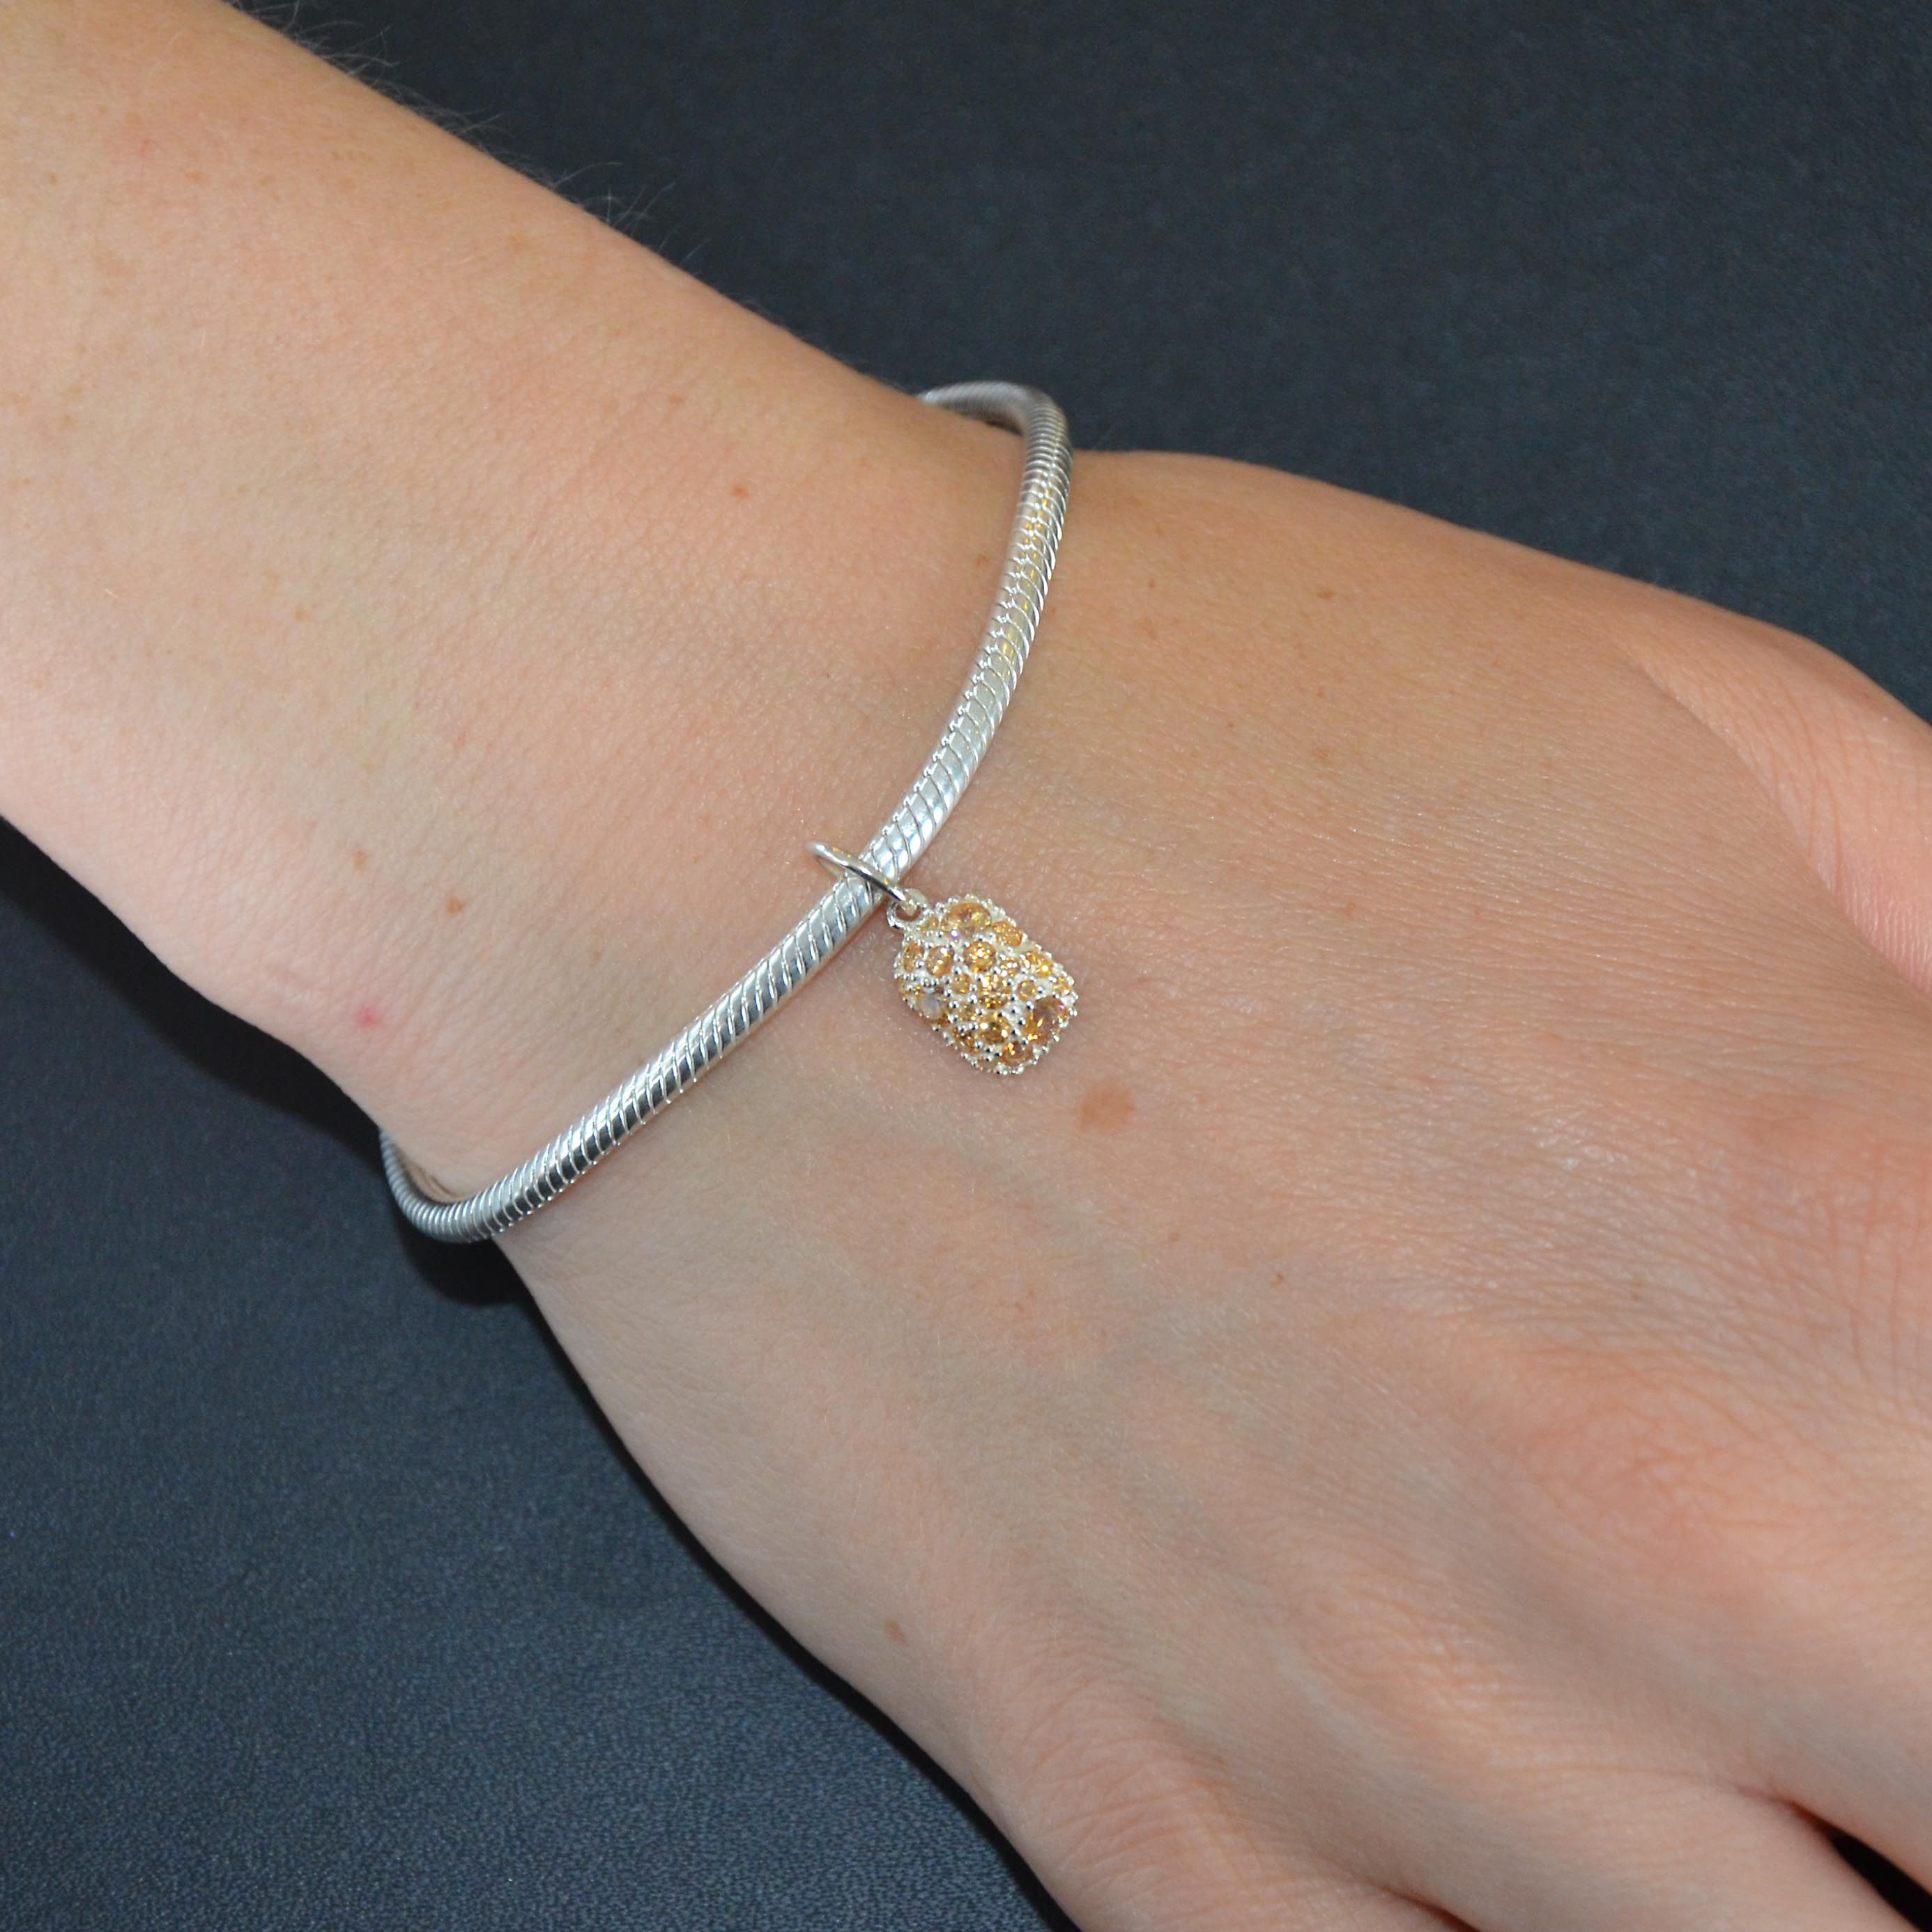 3502f43cf7ae5 This beautiful oval snap bracelet from the Chamilia collection is ...